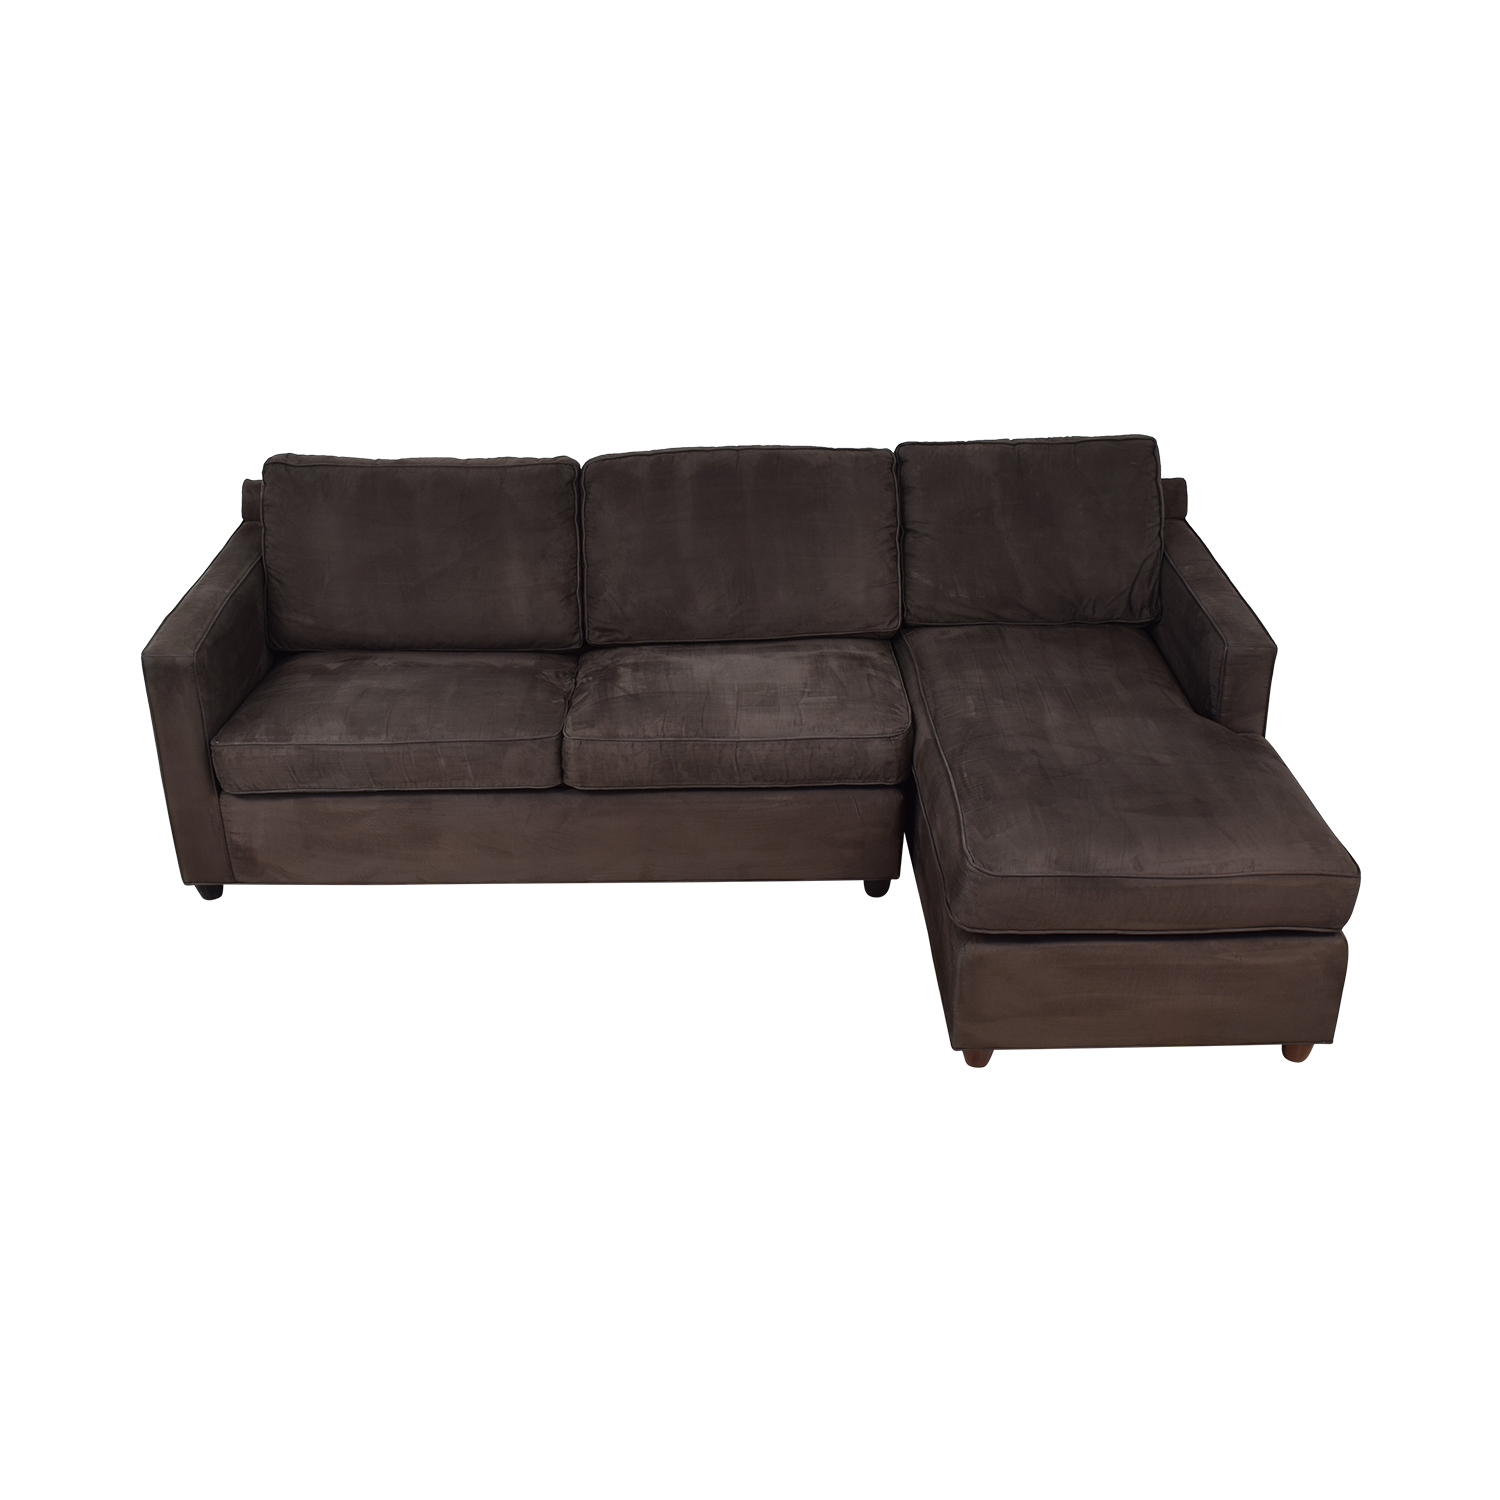 75 off crate barrel crate barrel sectional sleeper sofas